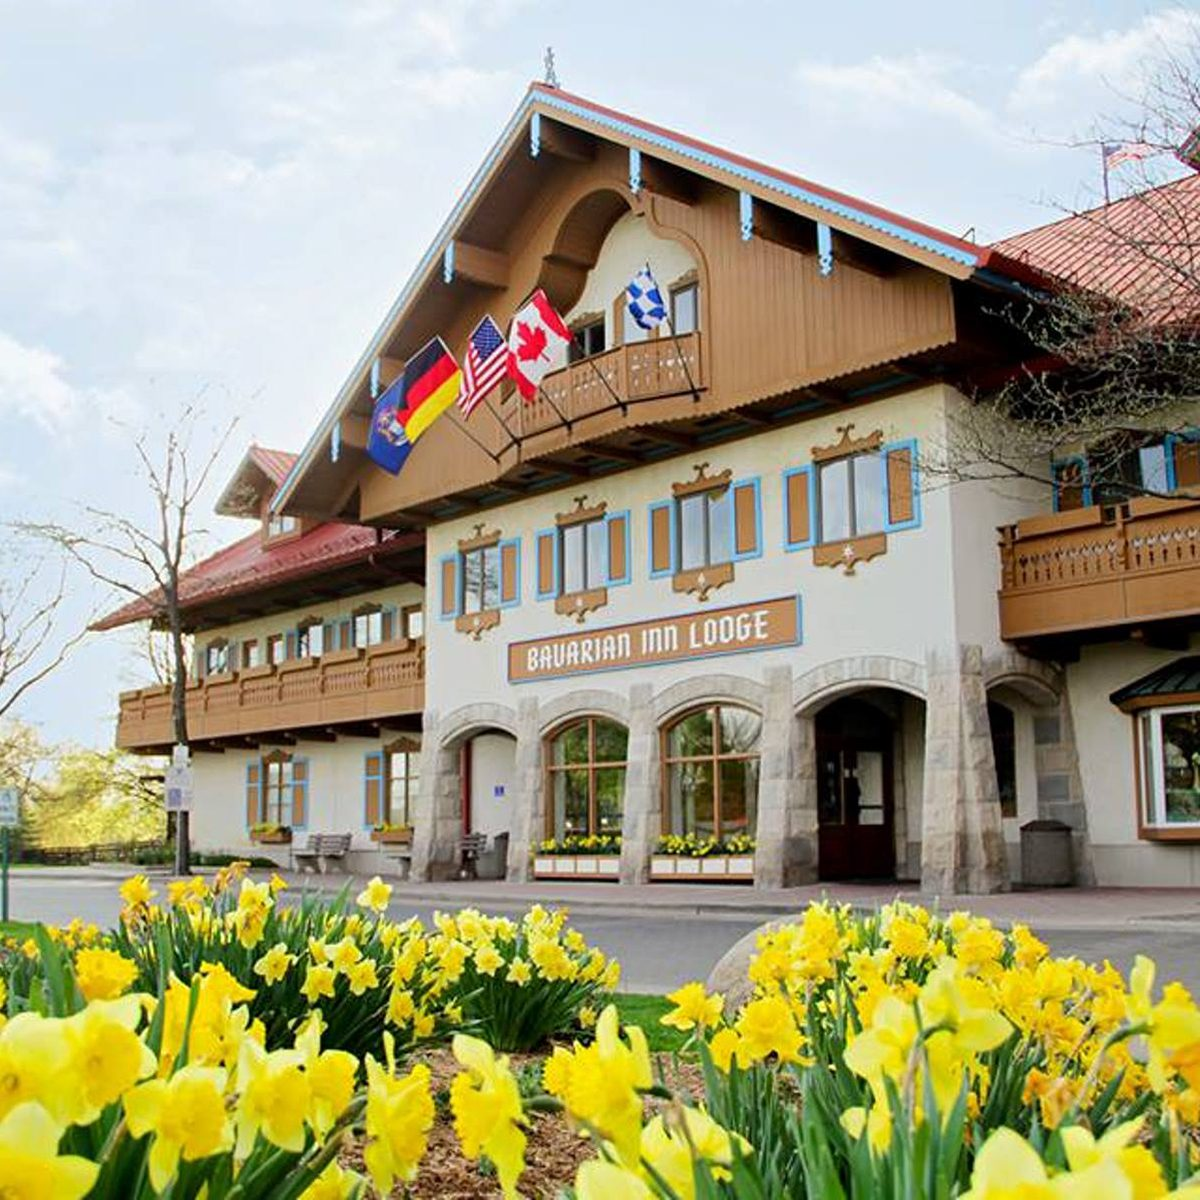 Exterior of the Bavarian Inn